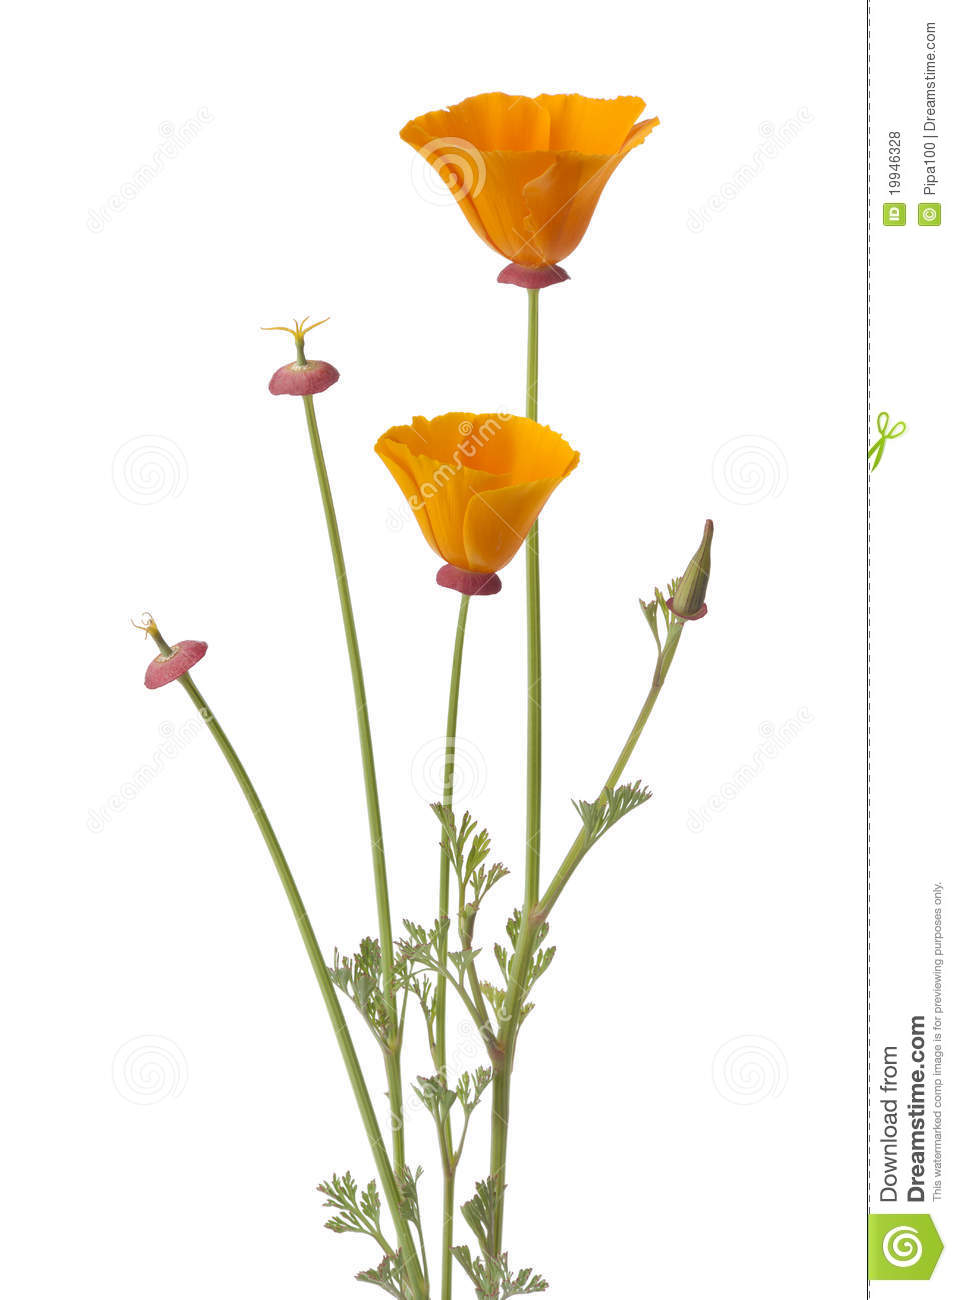 California Poppy And Buds Royalty Free Stock Photos.